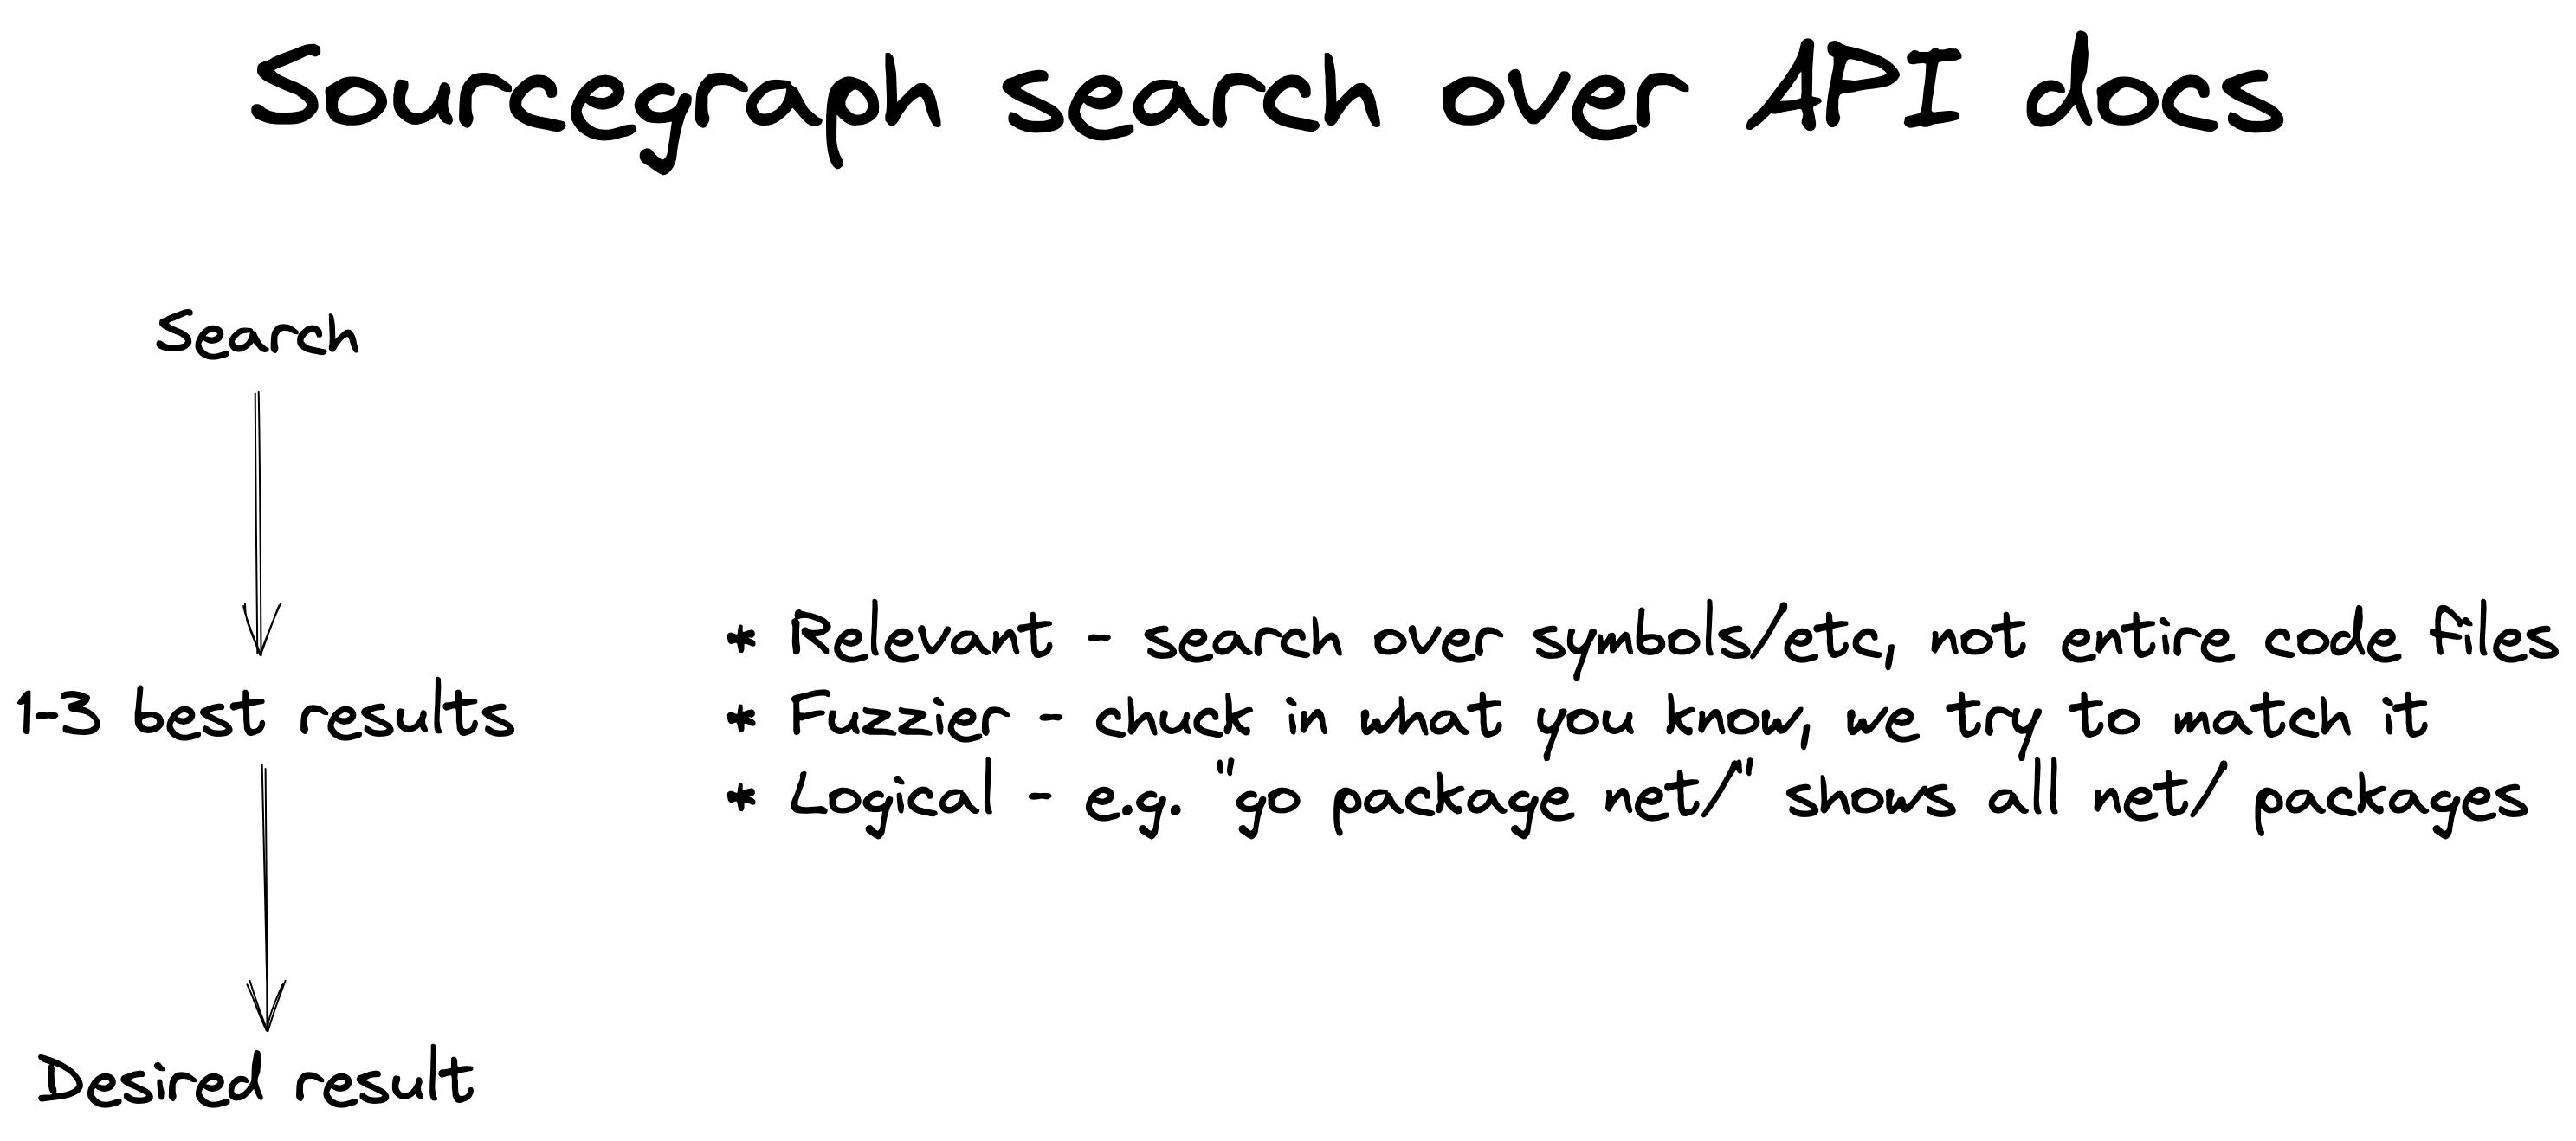 """Graphic: Sourcegraph search over API docs, a search begins by locating the best 1-3 results. These are relevant results due to searching over symbols not entire code files, fuzzier so you chuck in what you know and we try to match it, logical so e.g. """"go package net/"""" shows all net/ packages. You get desired results right out of the gate."""